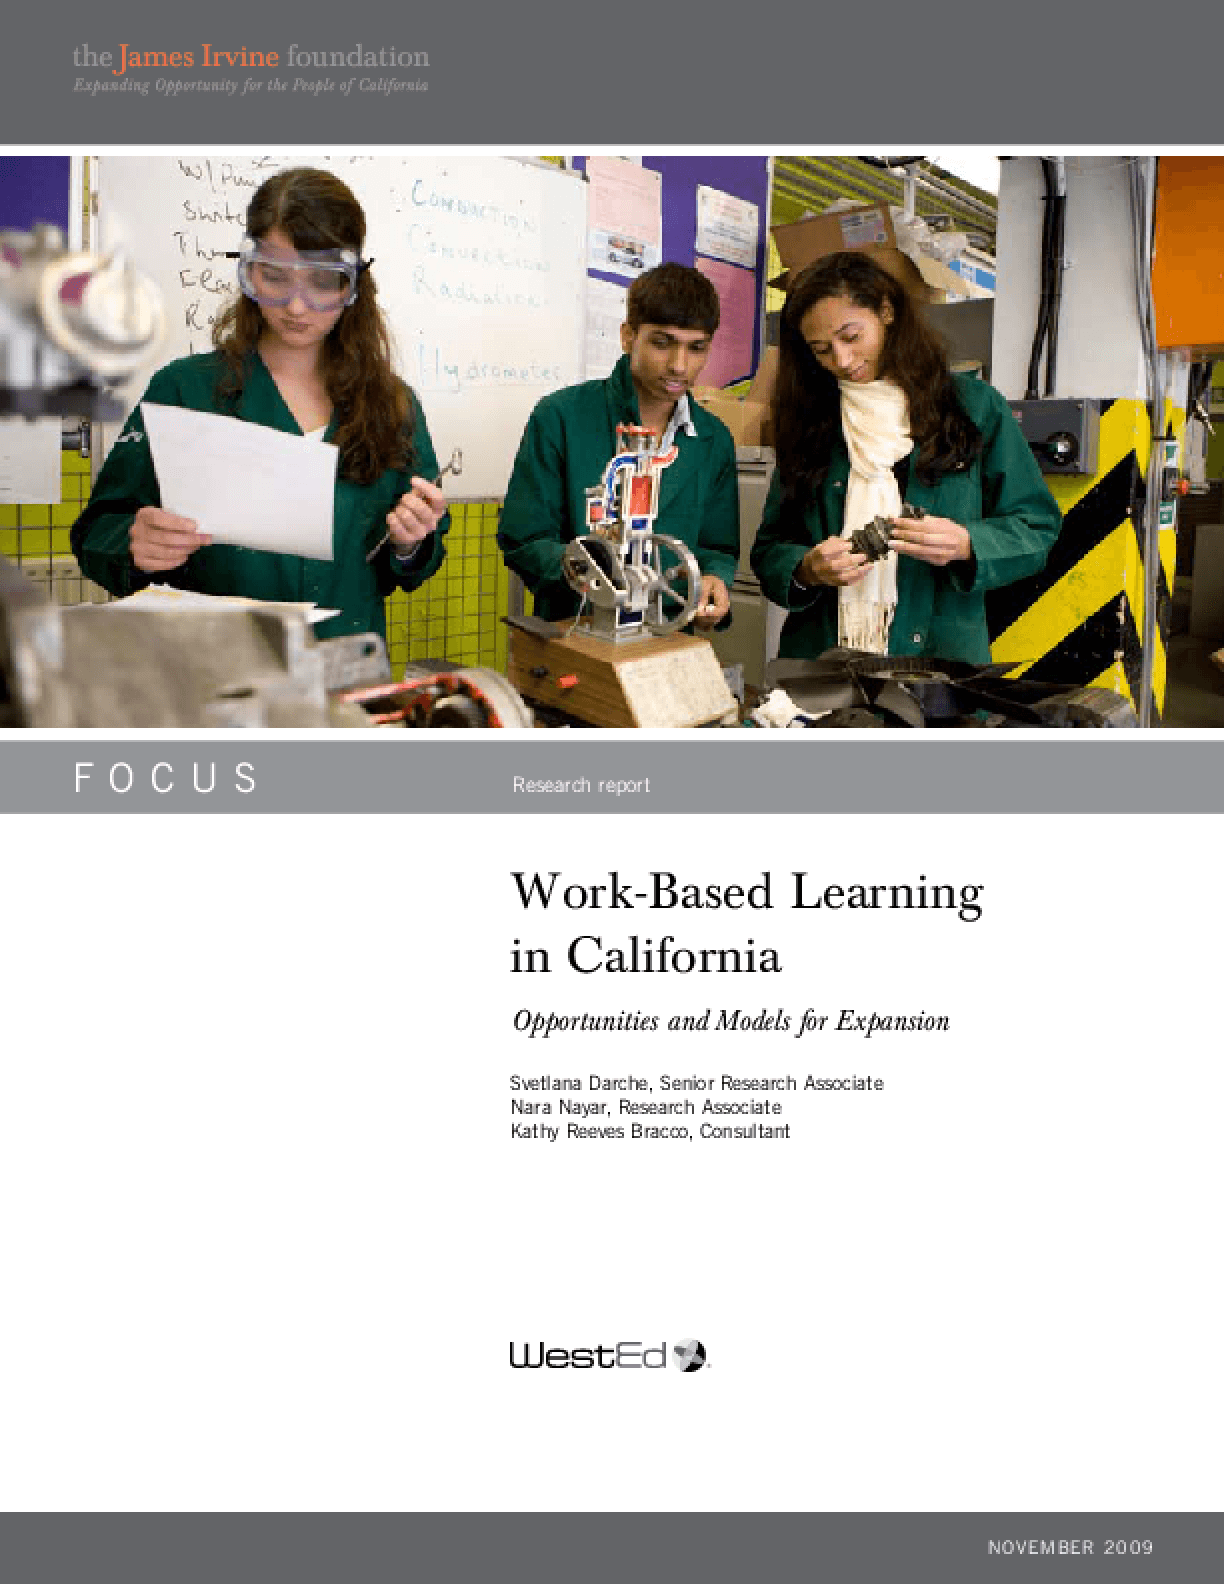 Work-Based Learning in California: Opportunities and Models for Expansion